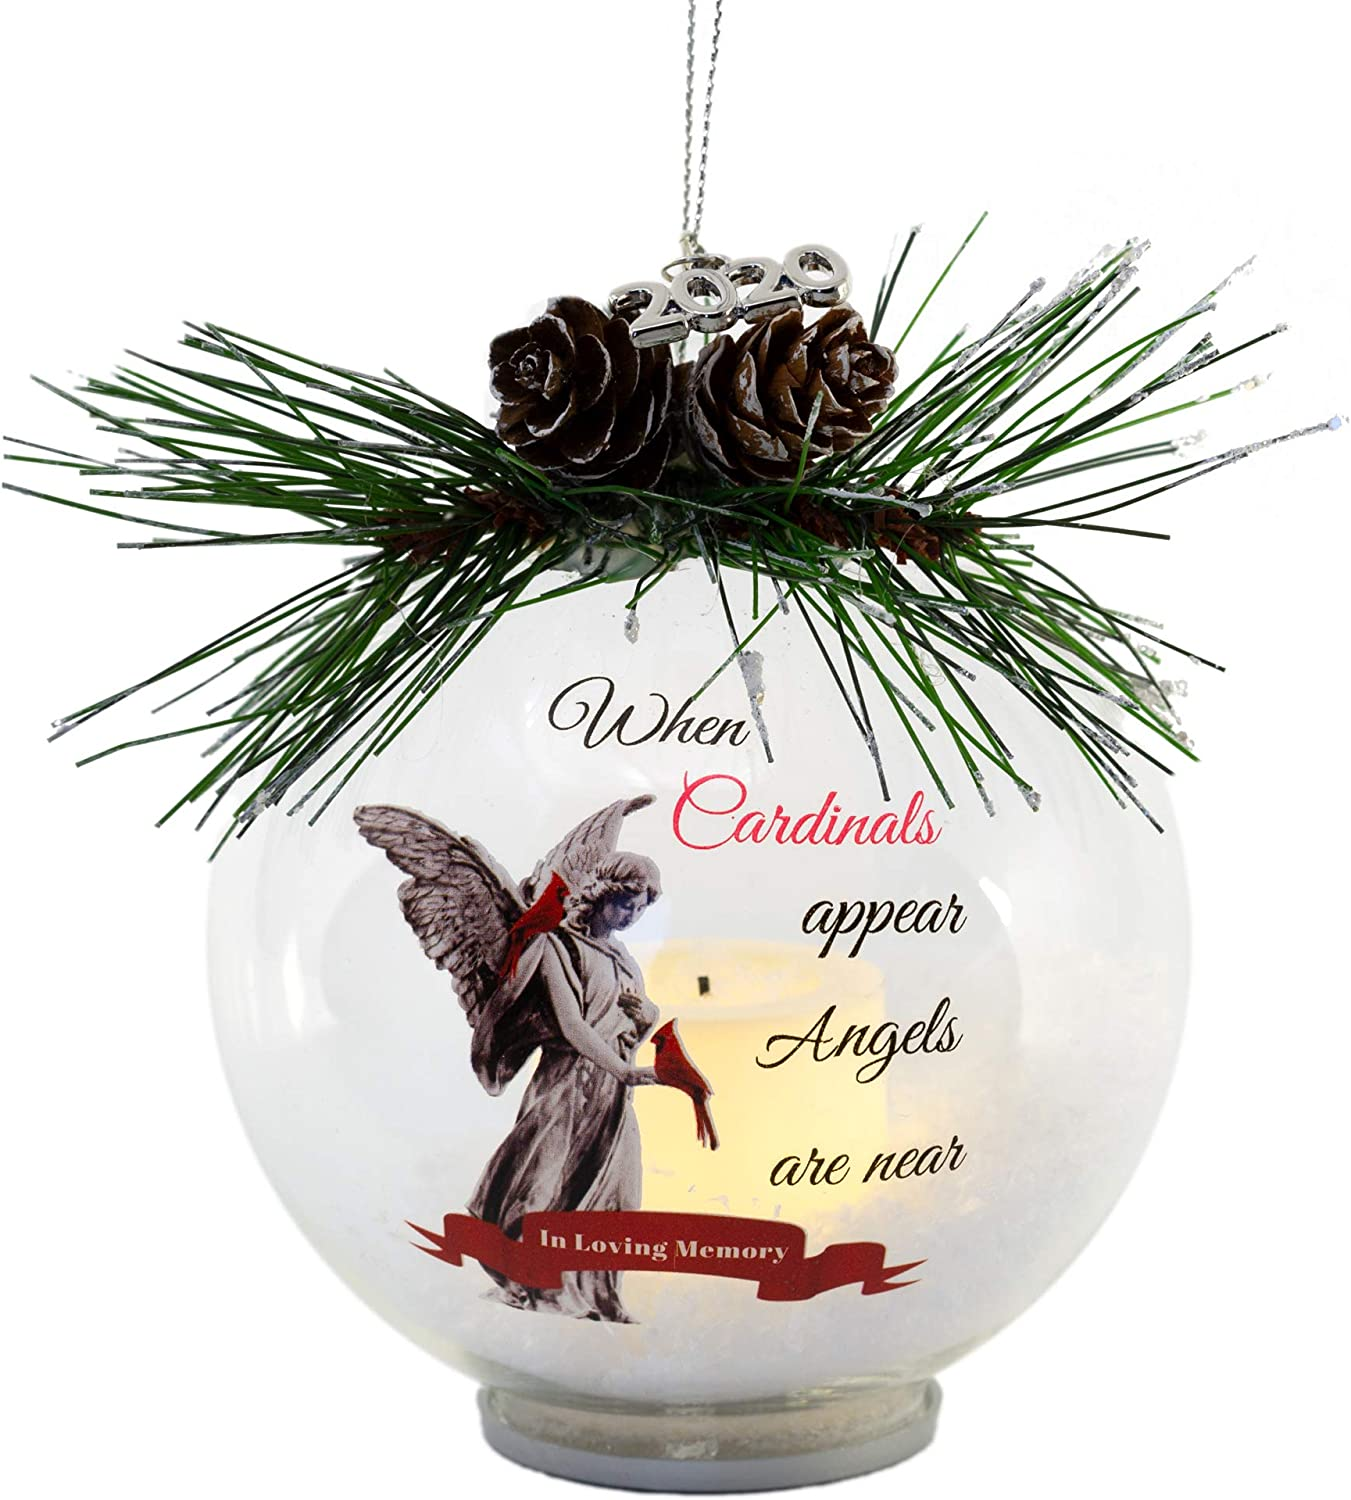 Amazon Com Memorial Christmas Ornament With A Beautiful Angel And Red Cardinal Dated 2020 Lighted Led Glass Ball With White Glittery Snow And Pinecones And Greenery Bereavement Remembrance Sympathy Home Kitchen